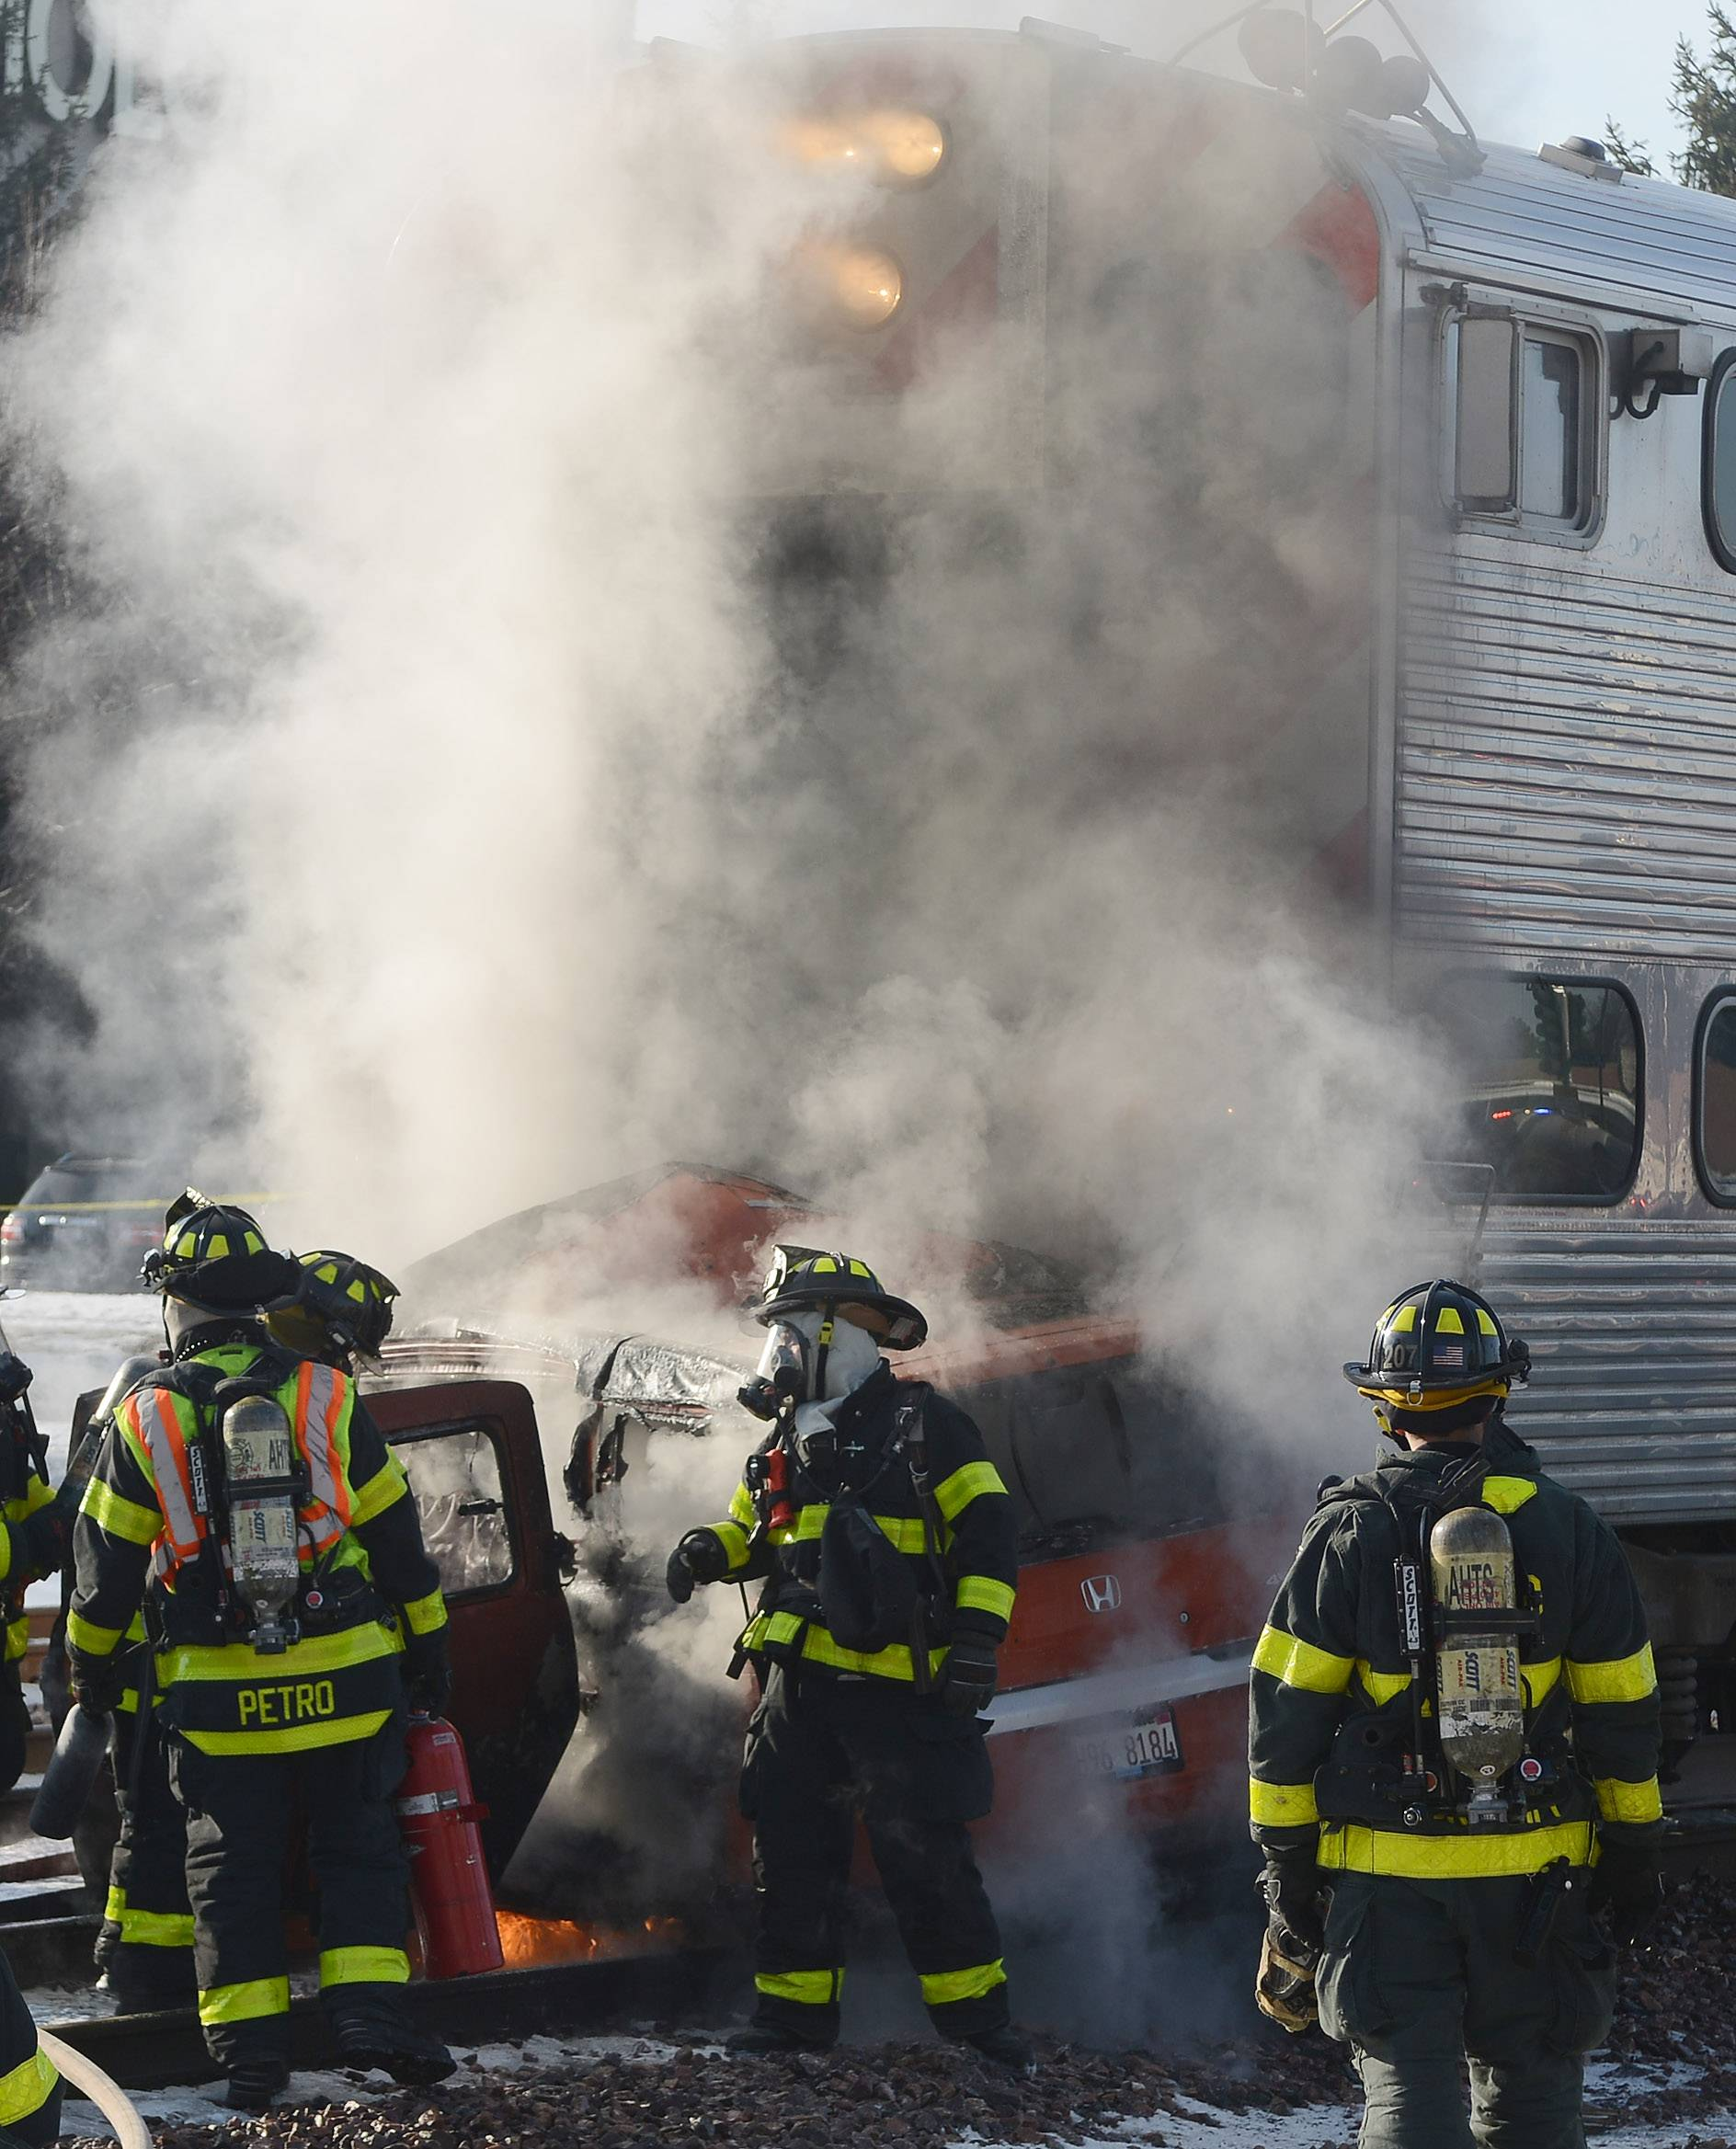 Arlington Heights firefighters extinguish a fire that resulted after inbound Union Pacific Northwest Line train number 646 struck a car at Euclid Avenue in Arlington Heights. The train came to a stop at Walnut Avenue with the burning car at the front of the lead coach.